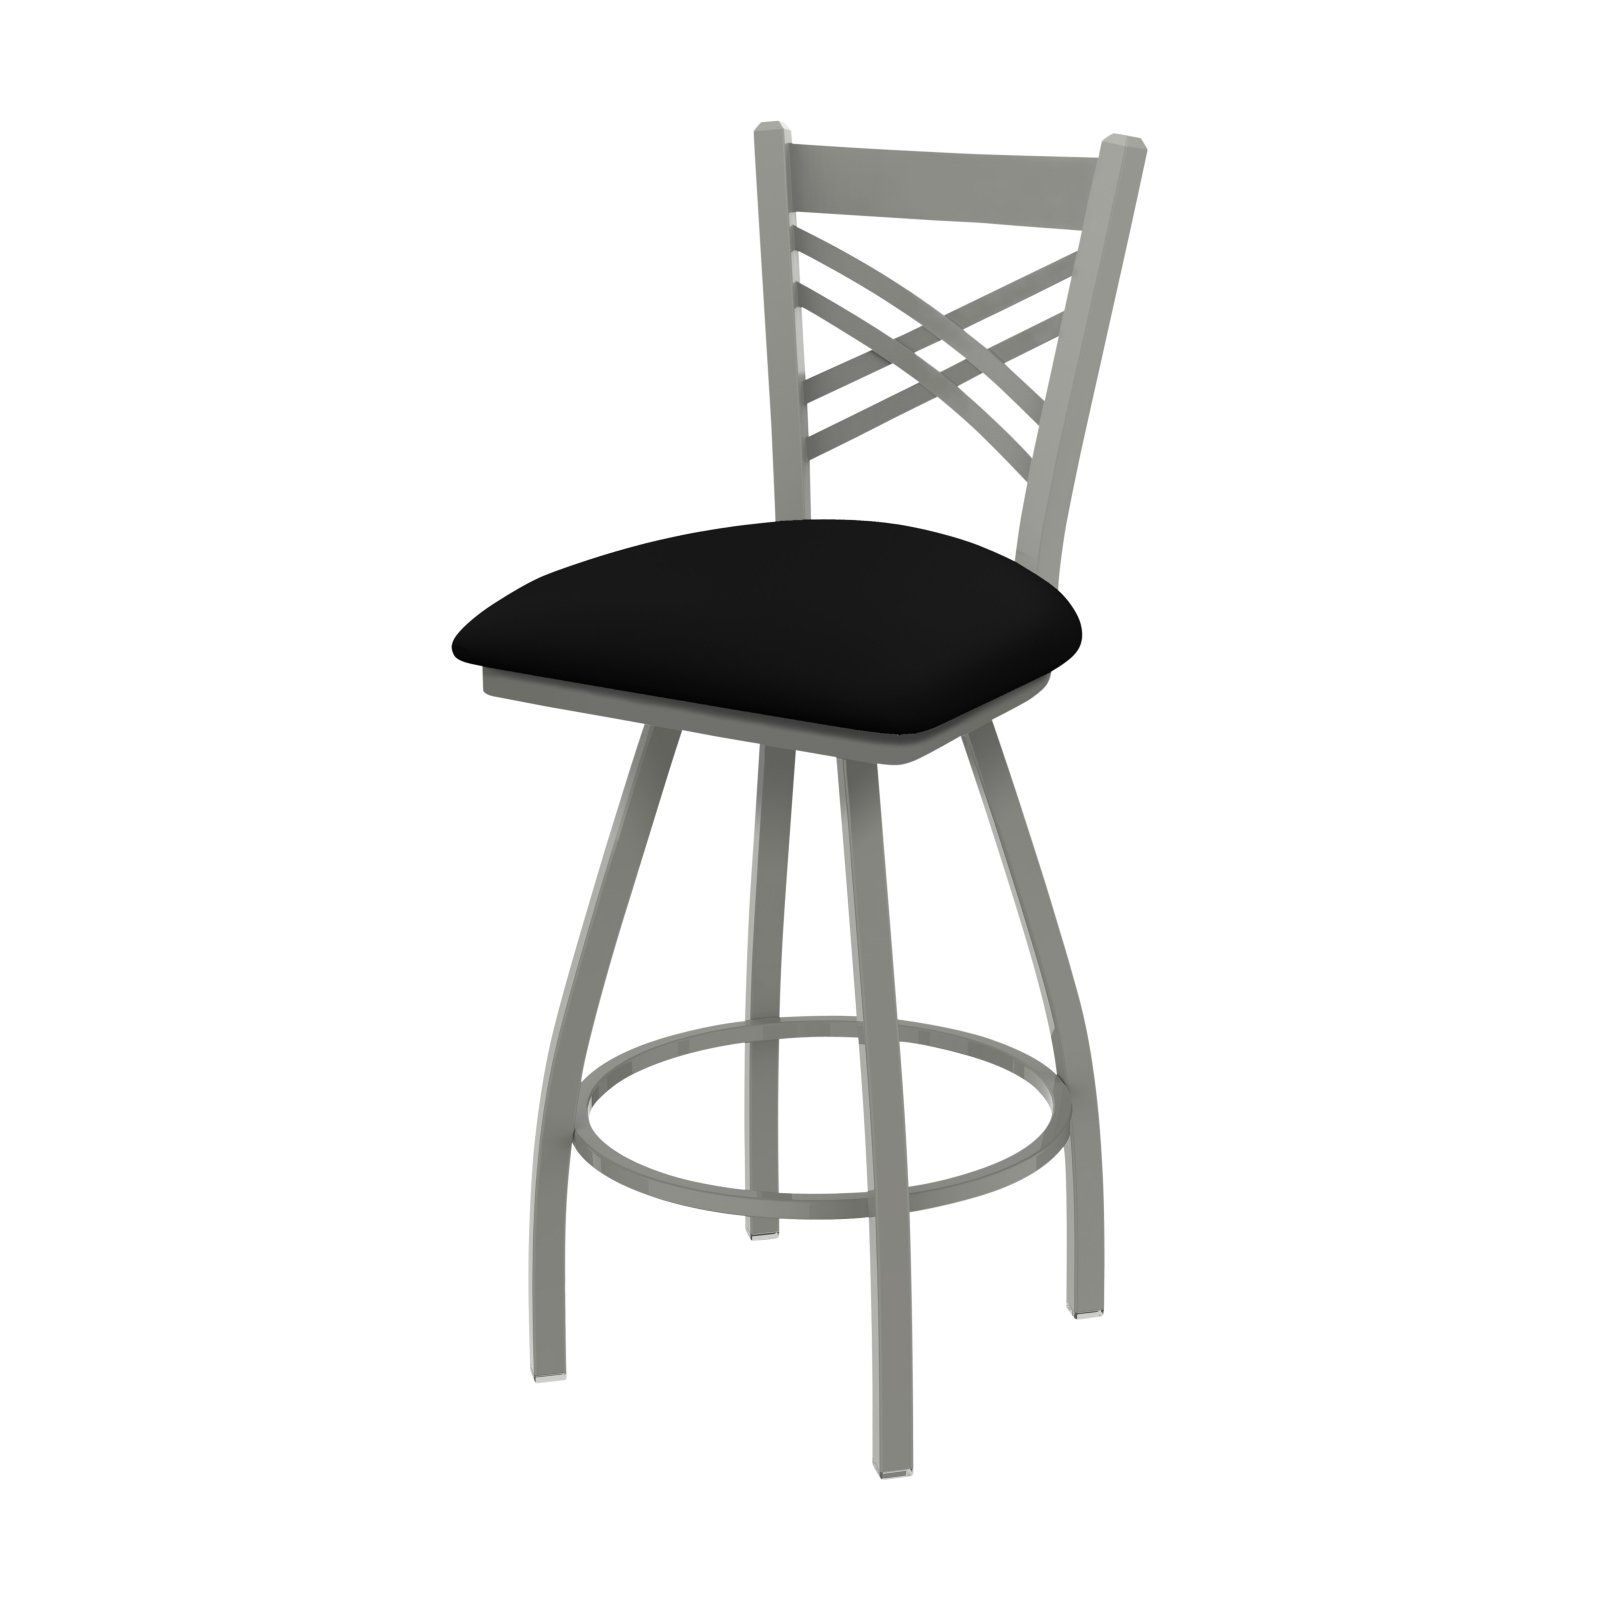 Holland Bar Stool Co Xl 820 Catalina 25 In Faux Leather Swivel Counter Stool Canter Kiwi Green Bar Stools Swivel